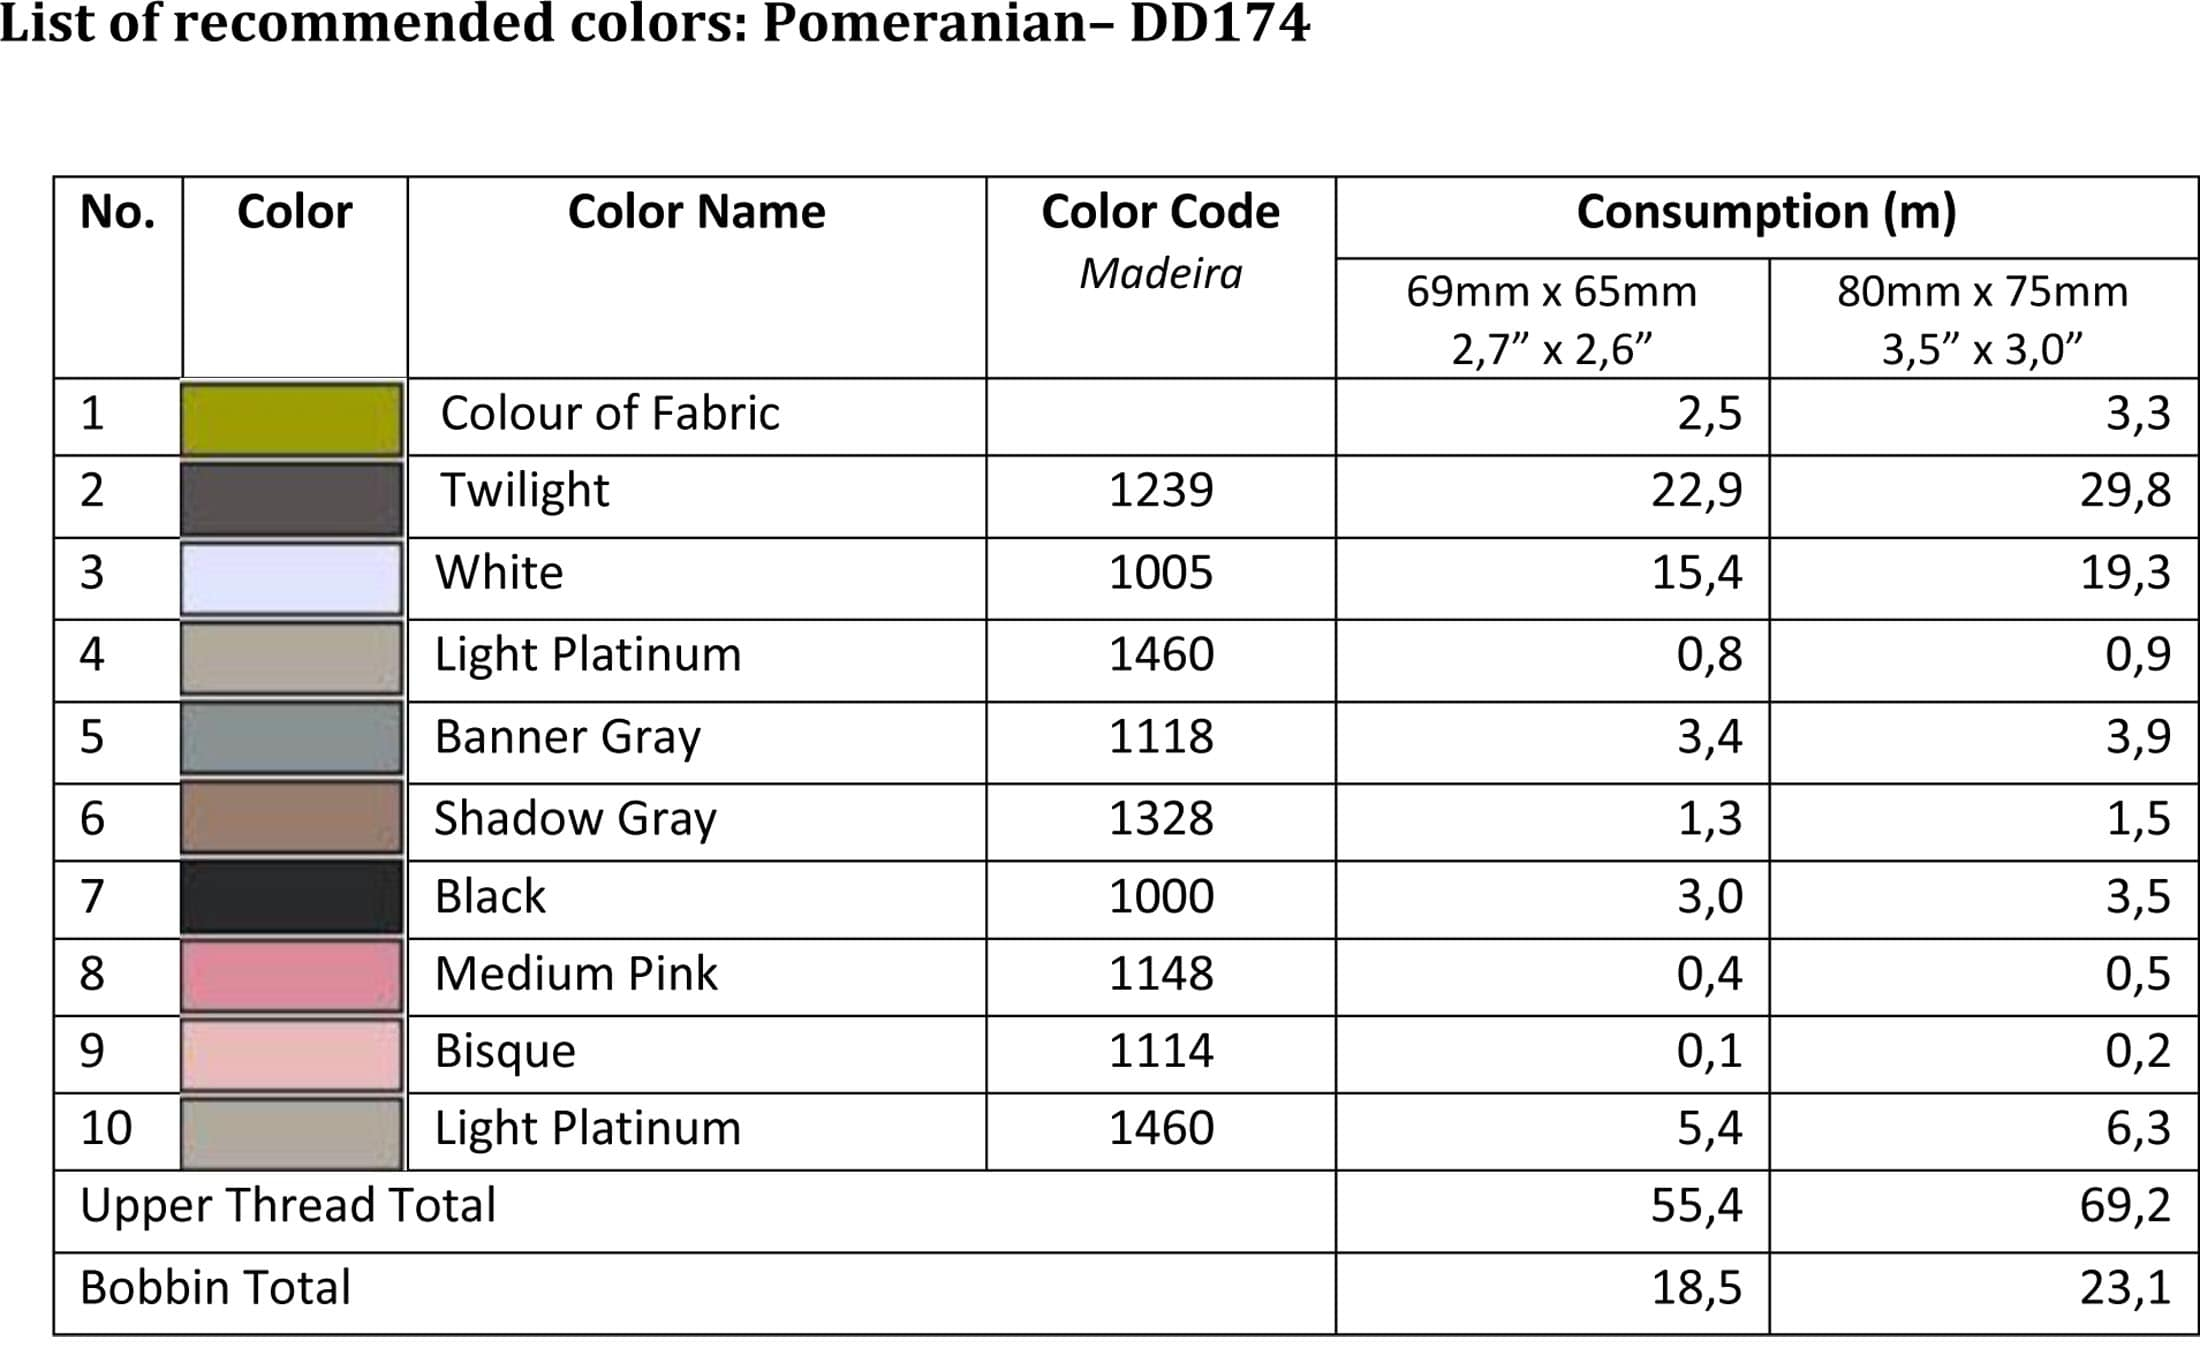 List of recommended colors - DD174